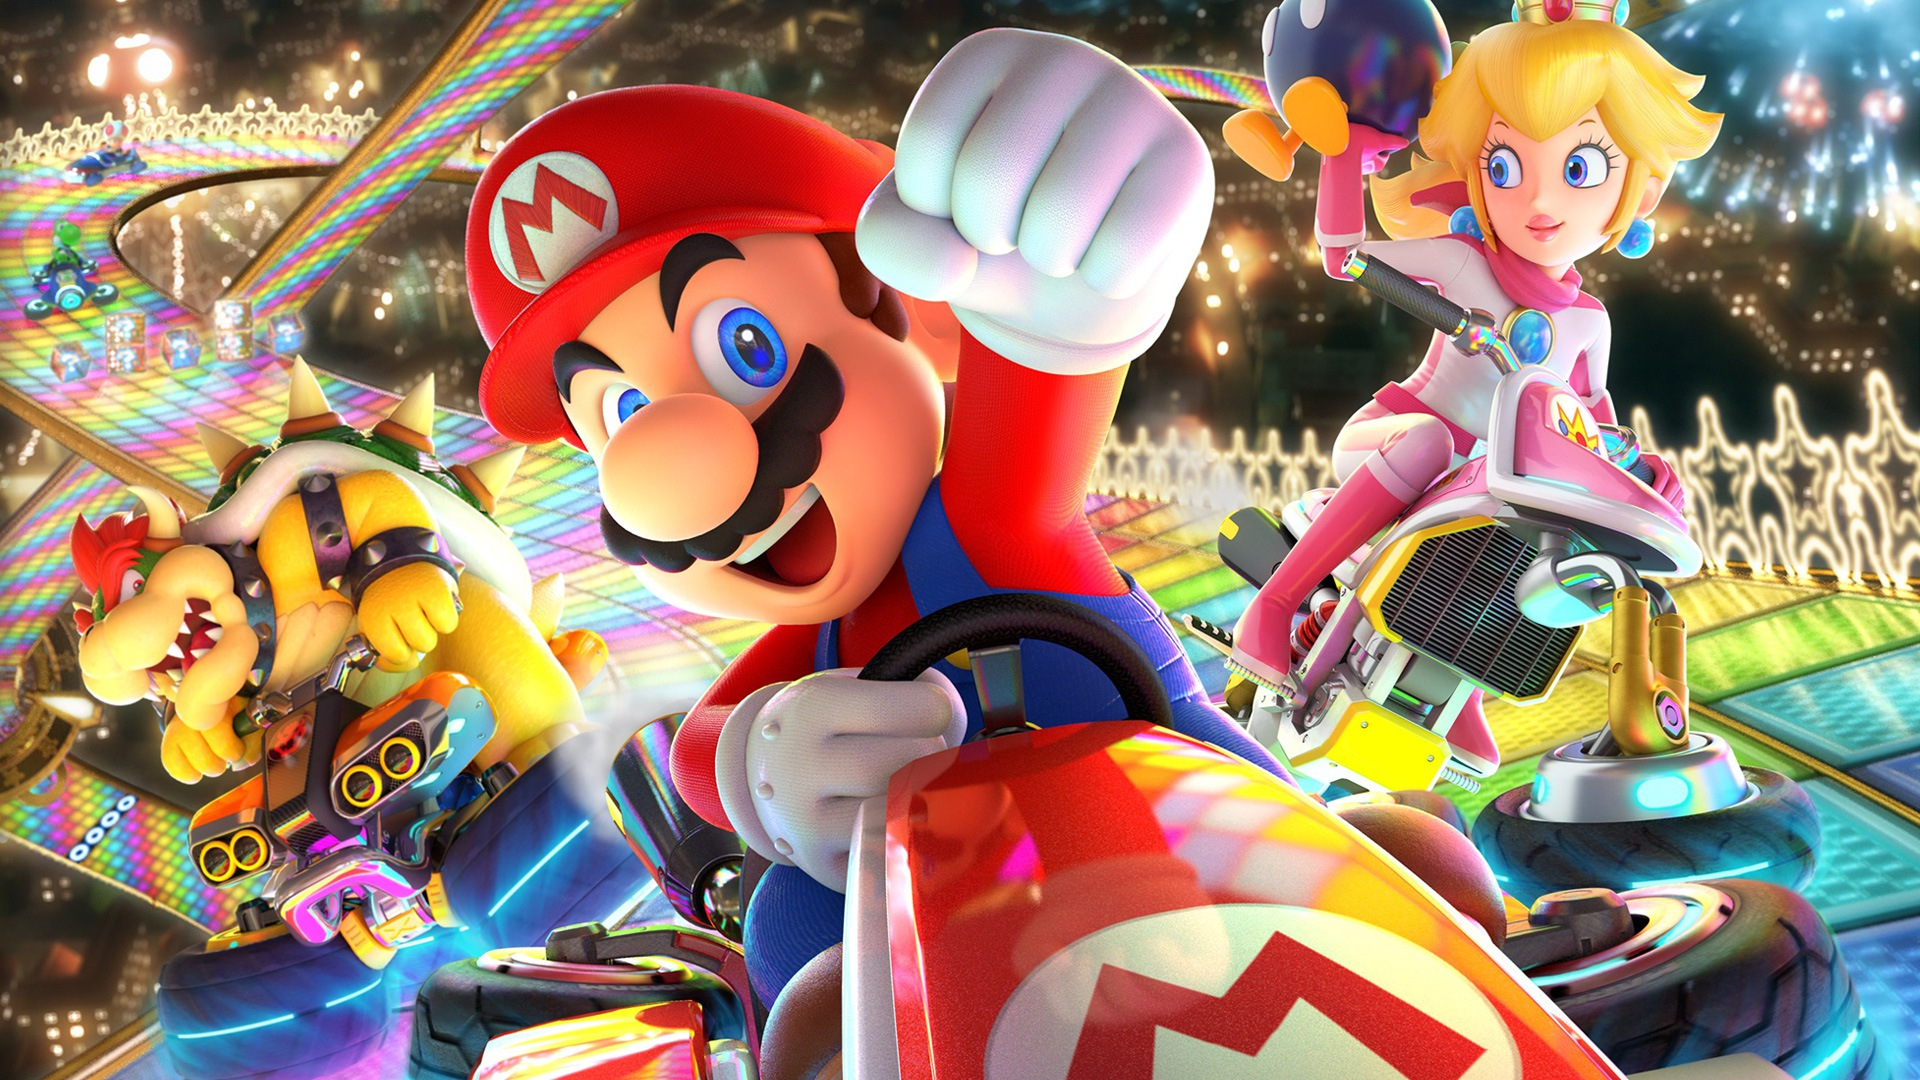 Mario Kart 8 Deluxe fends off Prey in UK Charts